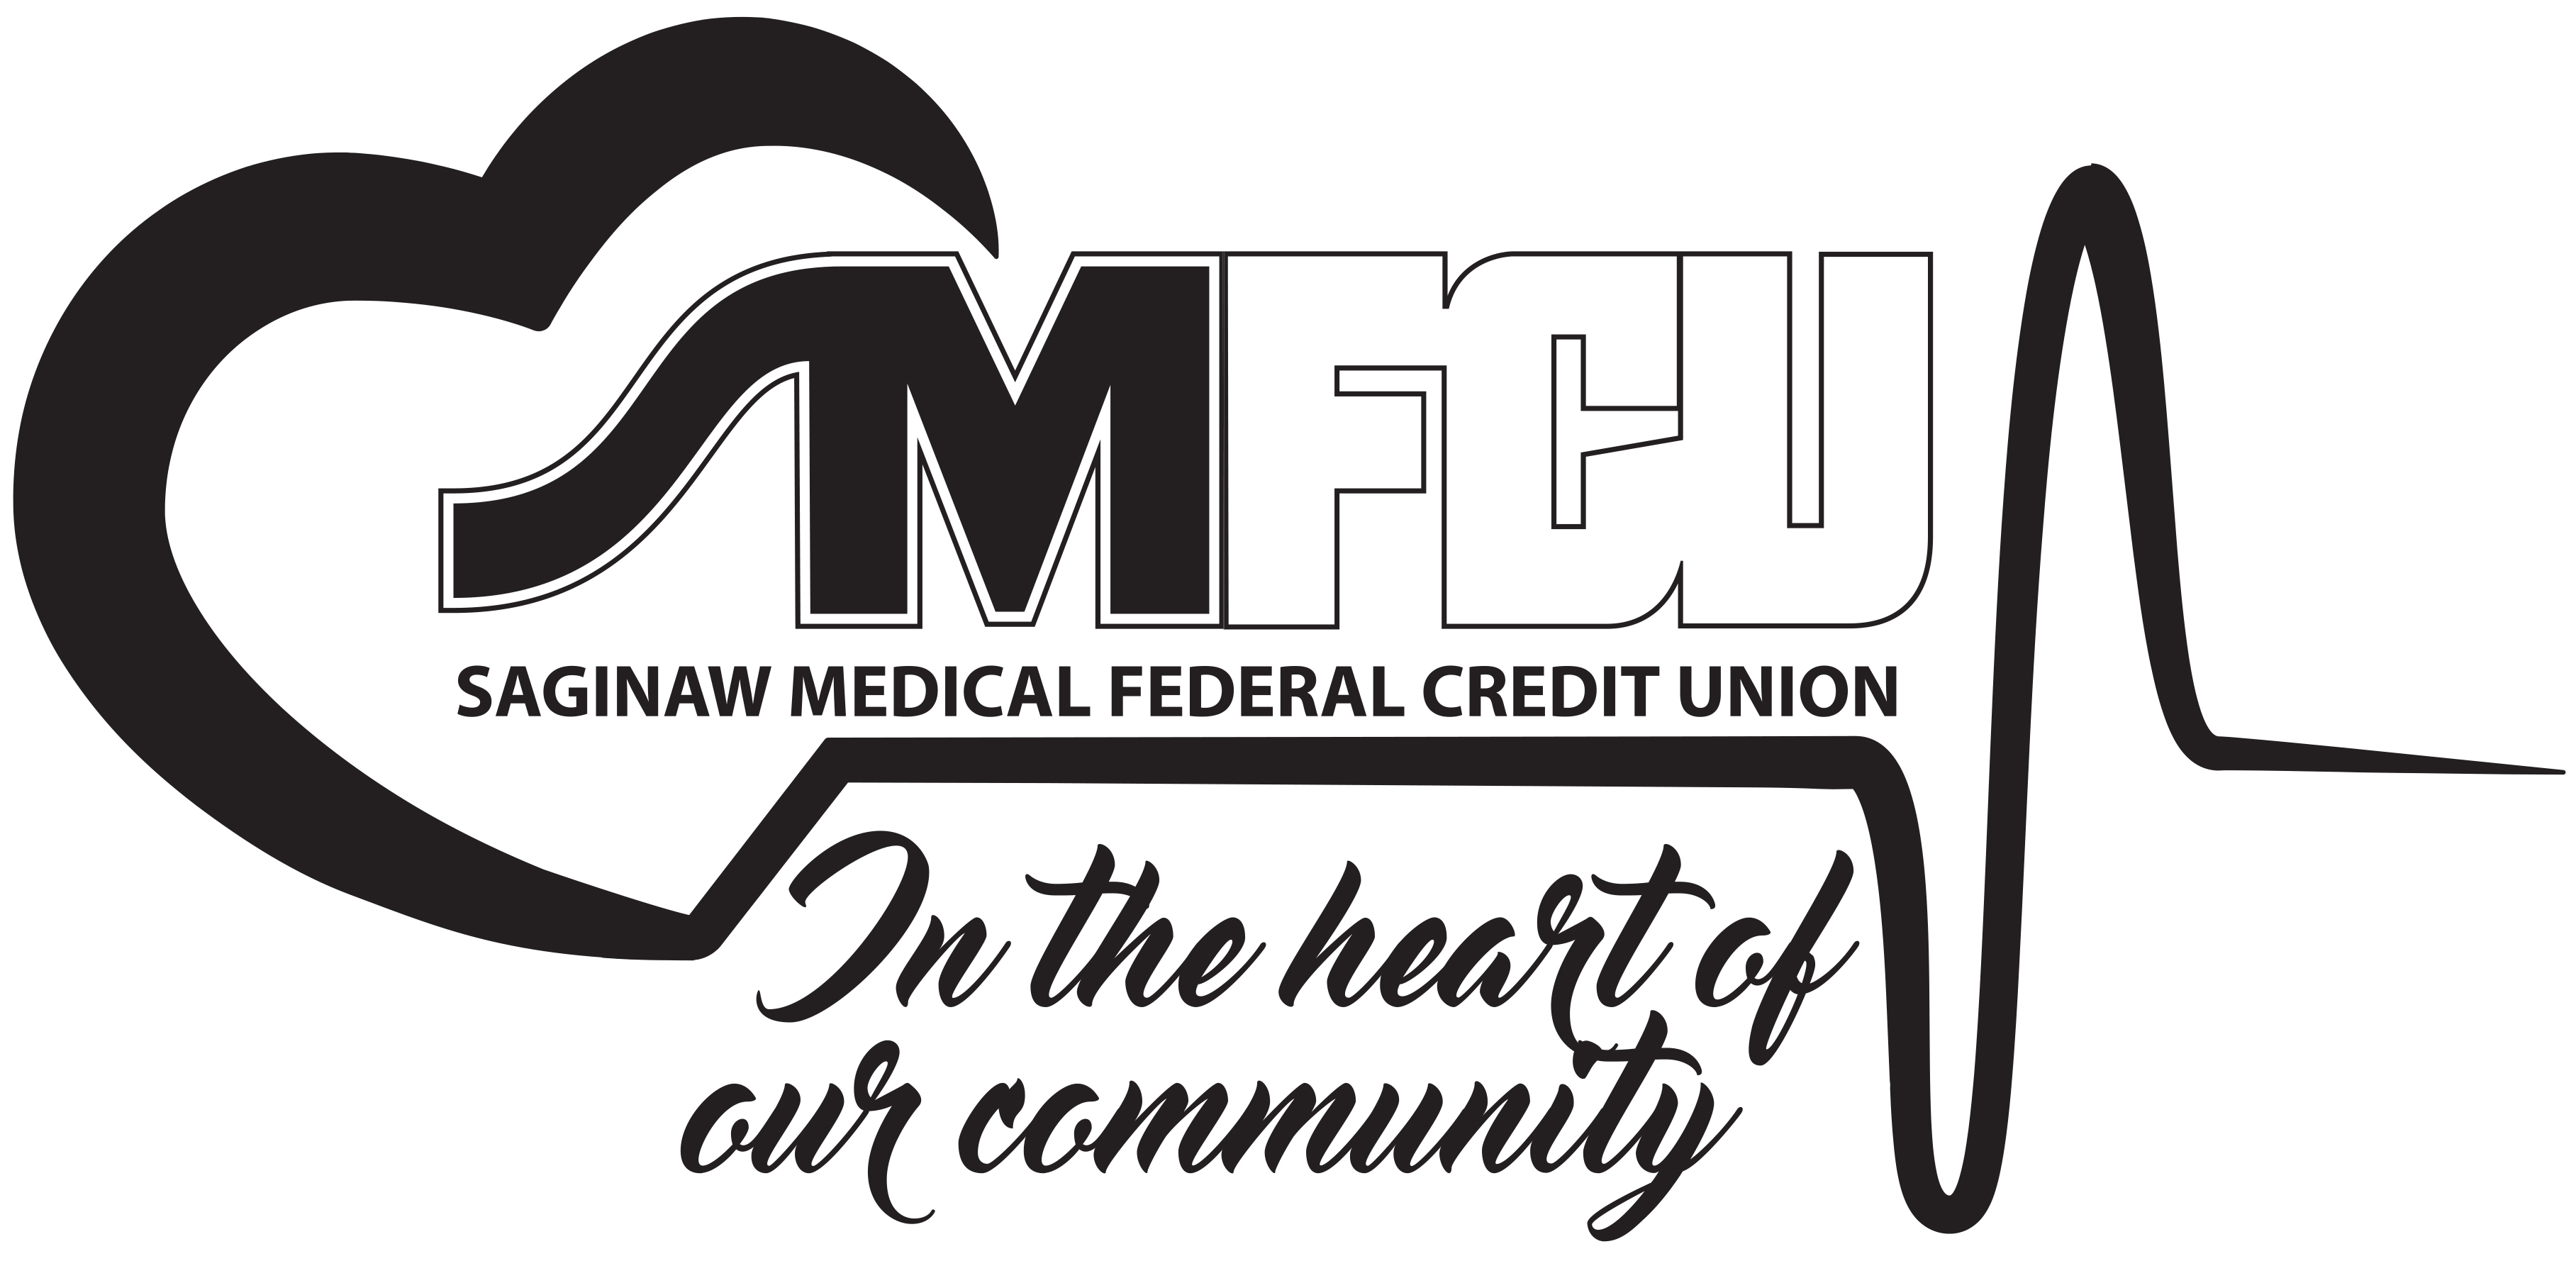 Saginaw Medical Federal Credit Union Community Caring